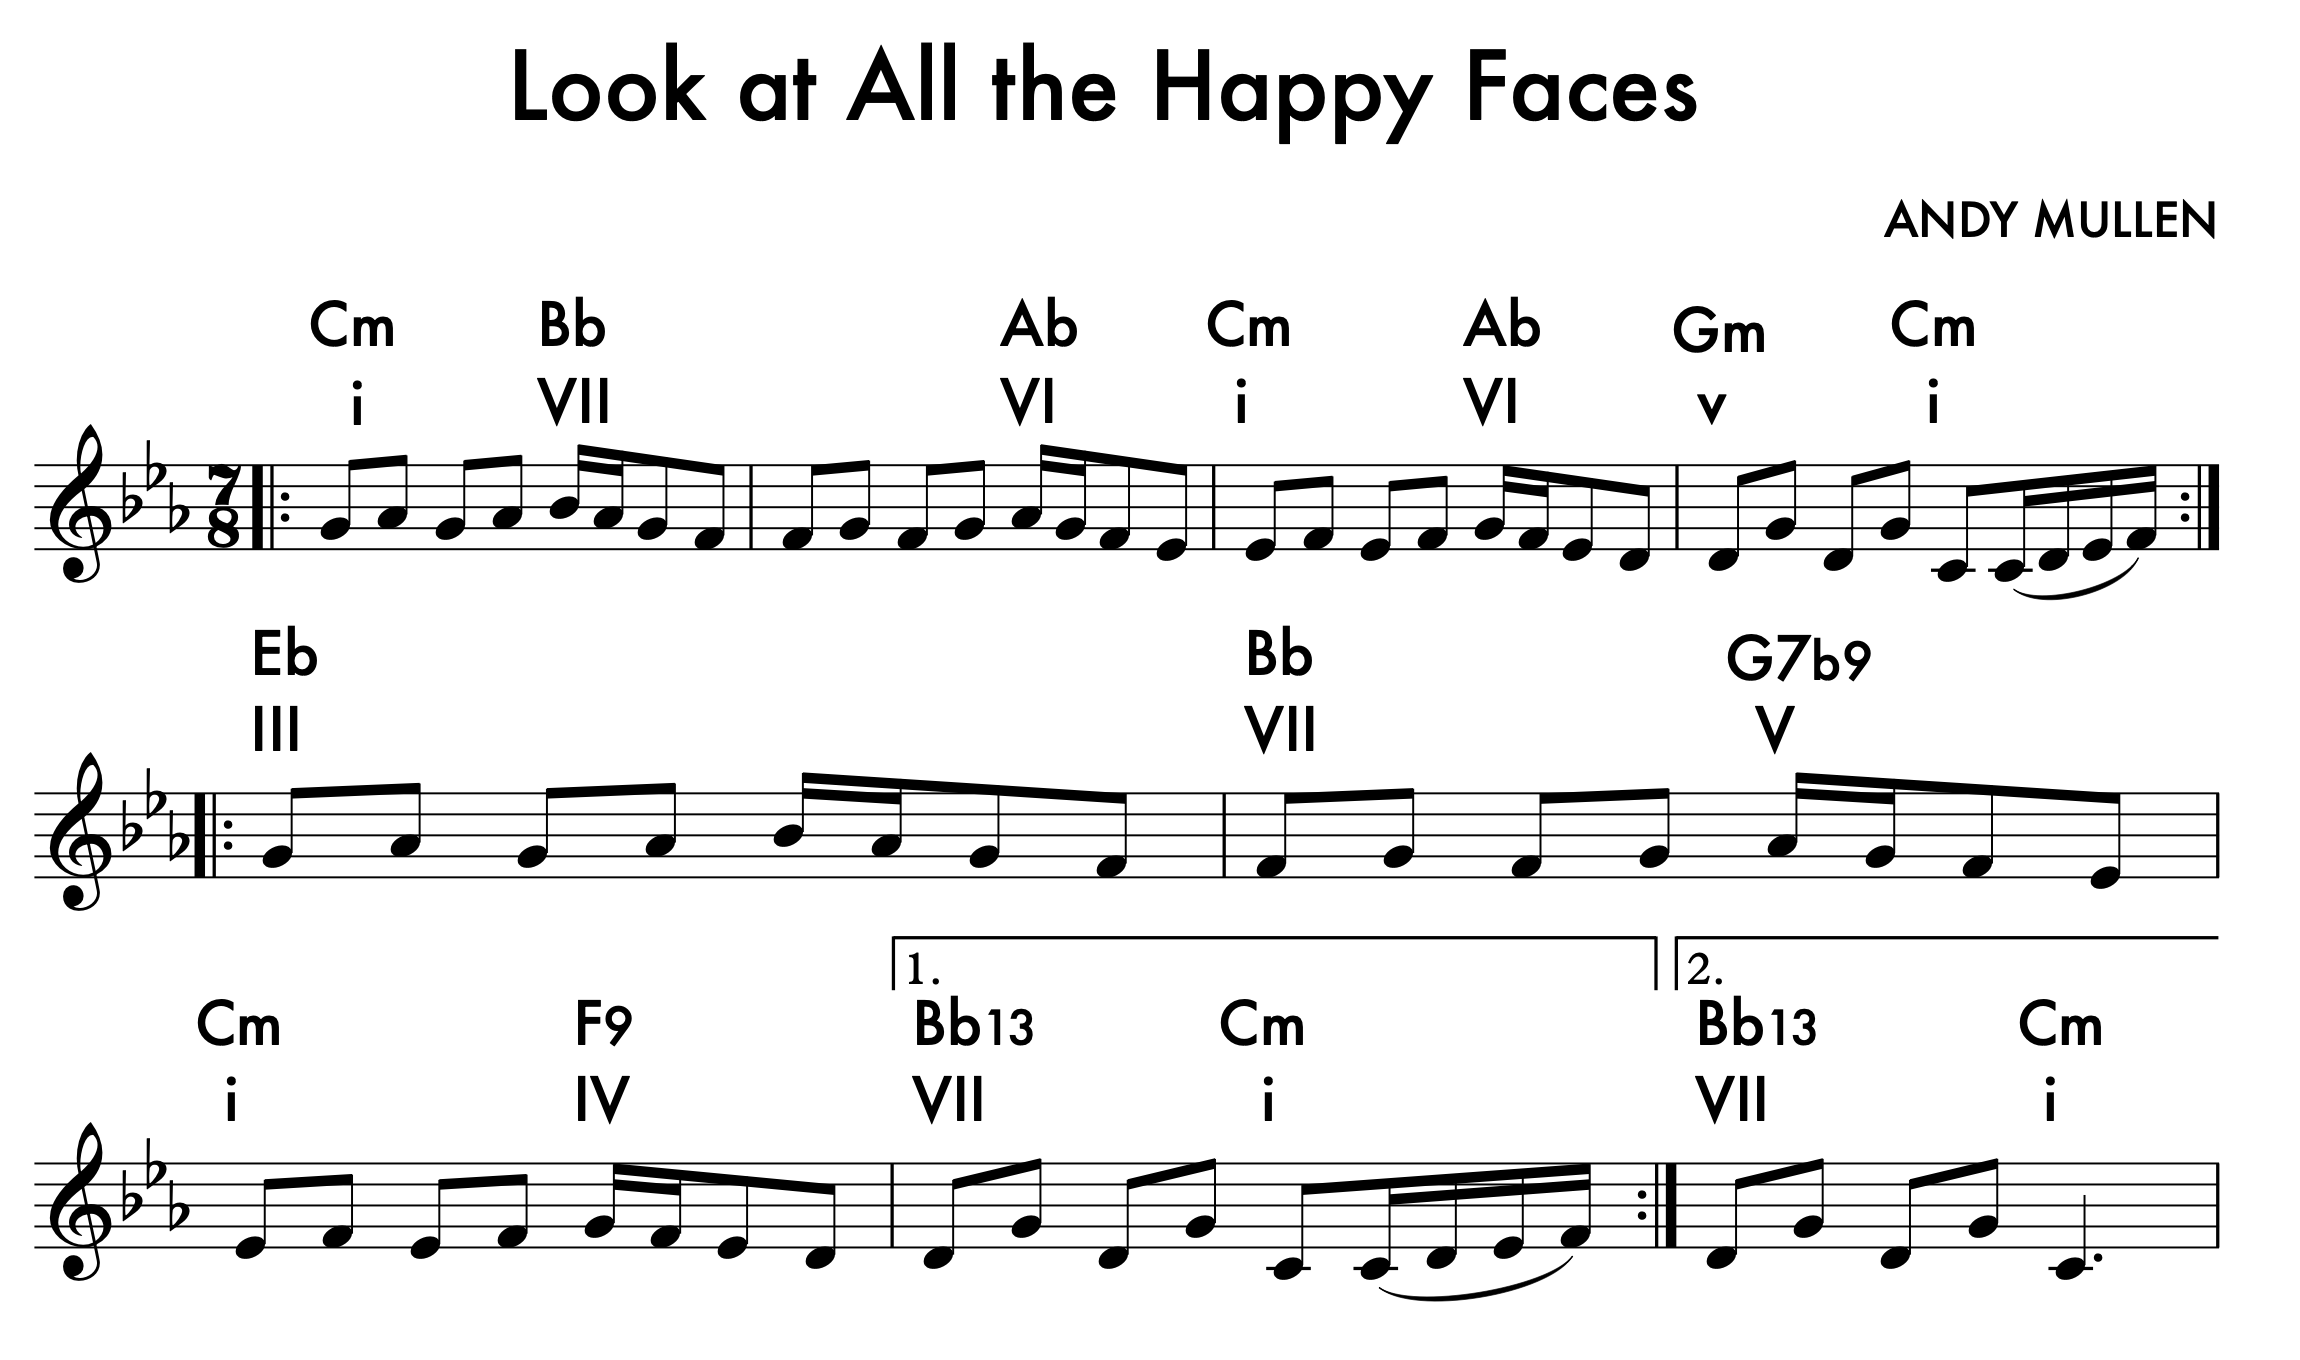 Look at All the Happy Faces - Look at All the Happy Faces (Tunes for Teaching)